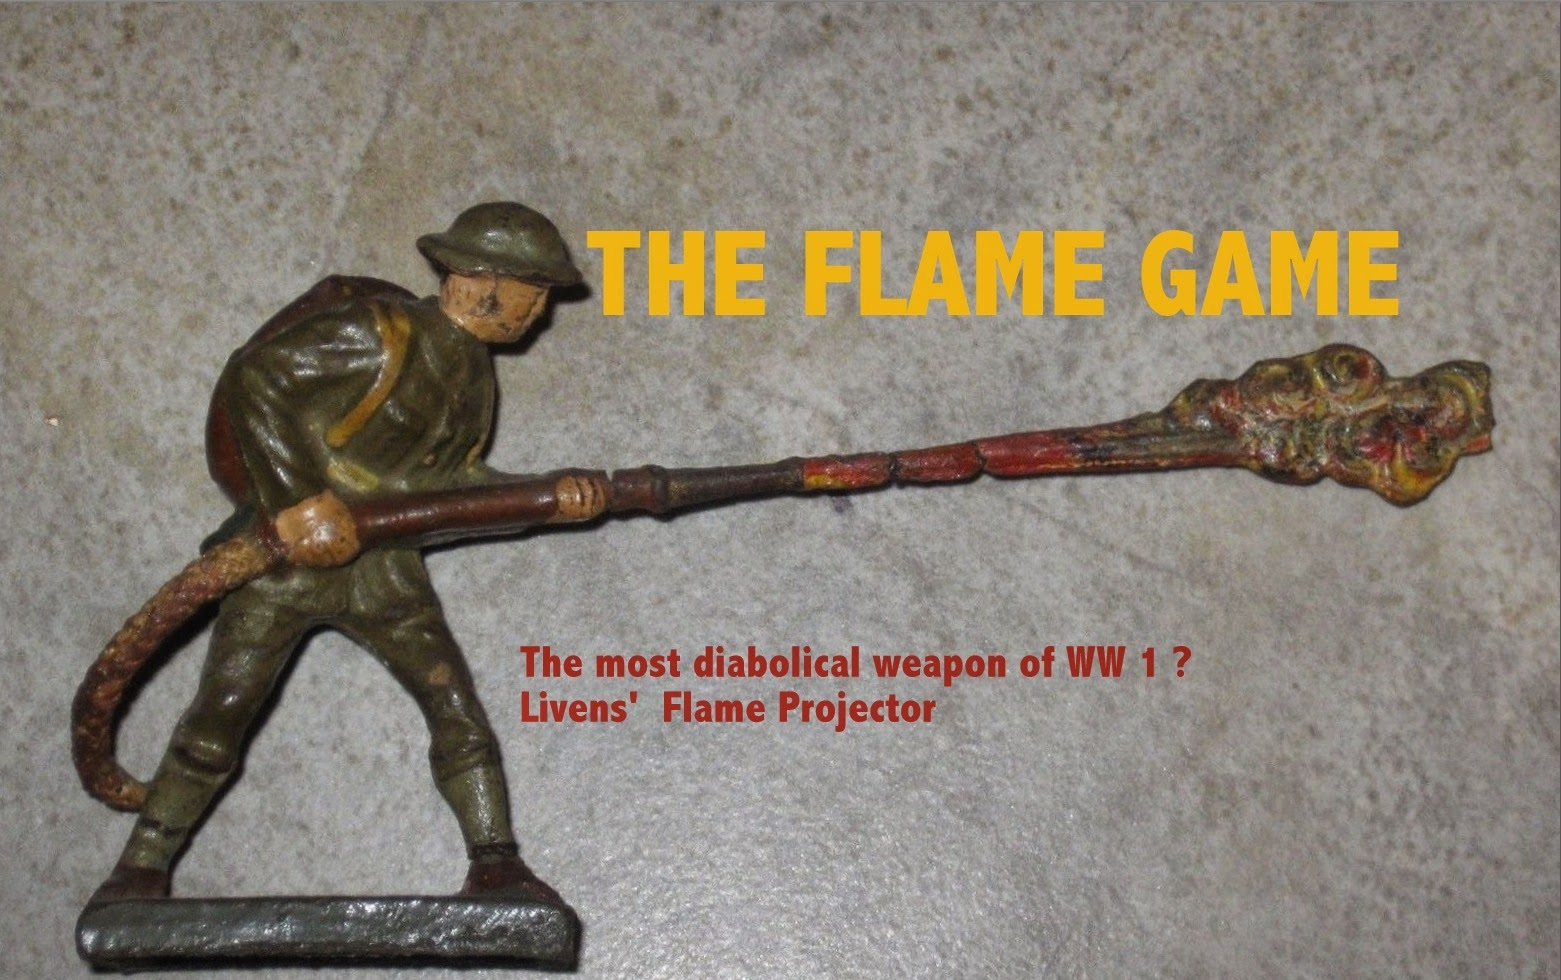 Flamethrower - British Toy Soldier,  Livens